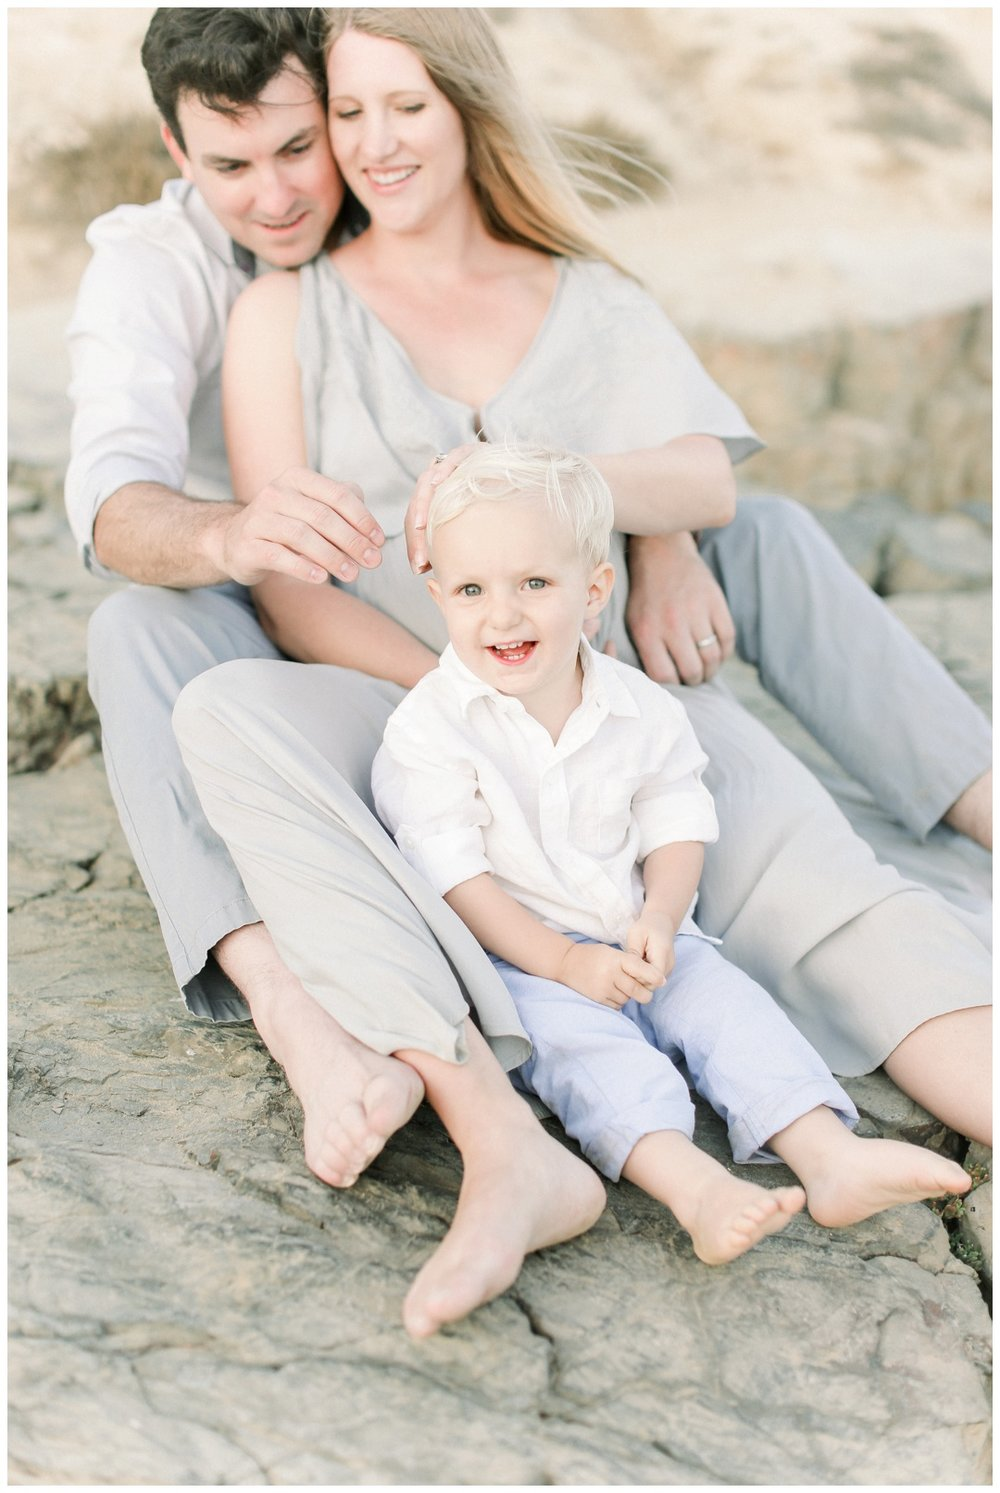 The_Epler's_Family_Newport_Beach_Family_Photographer_Orange_County_Family_Photography_Cori_Kleckner_Photography_Orange_County_Beach_Photographer_Family_Photos_Session_Crystal_Cove_Session__1443.jpg